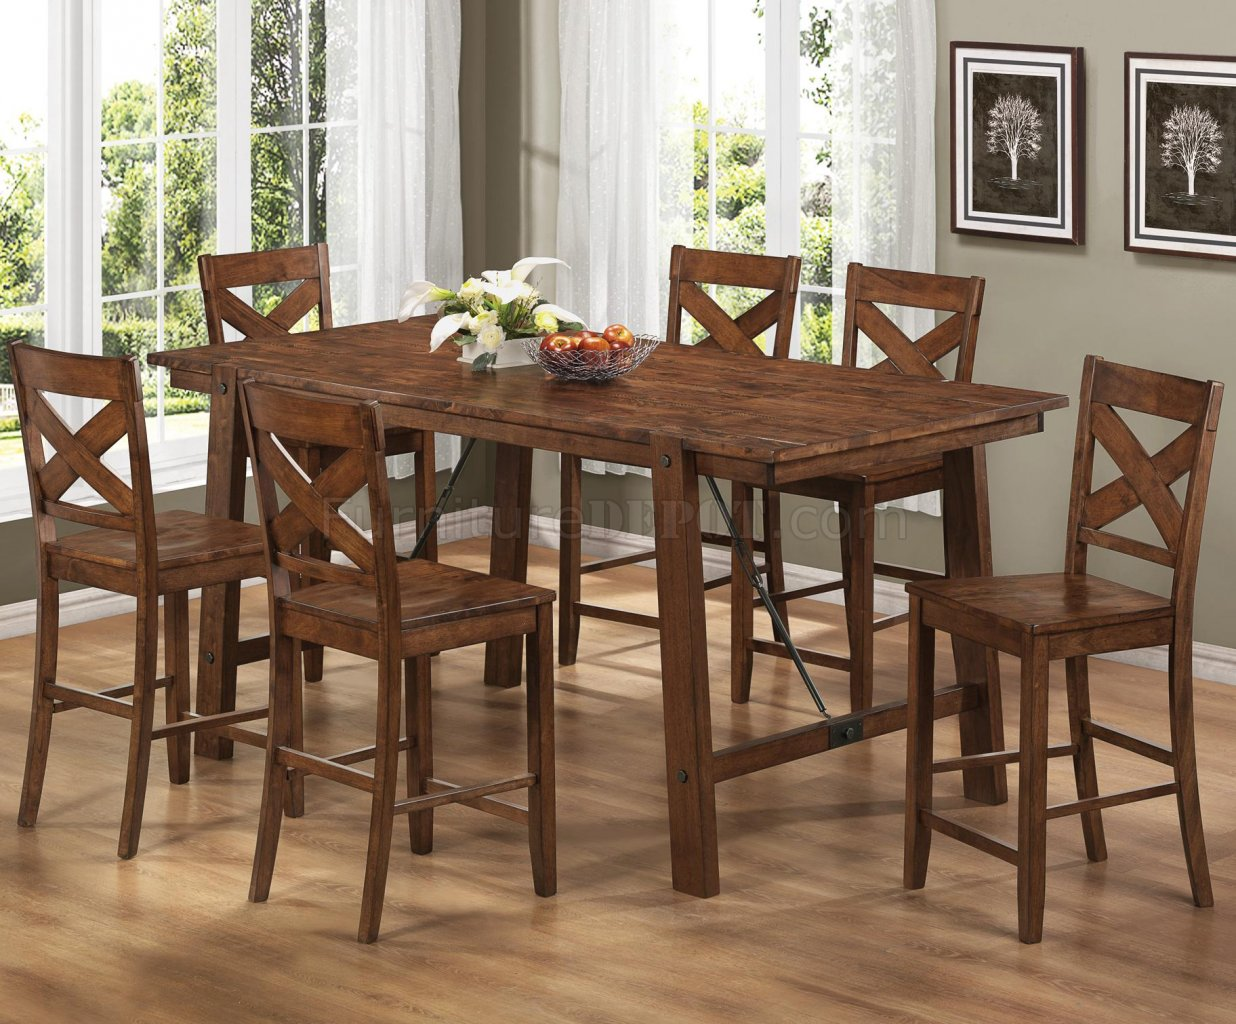 lawson counter height dining table by coaster woptions p high kitchen table sets